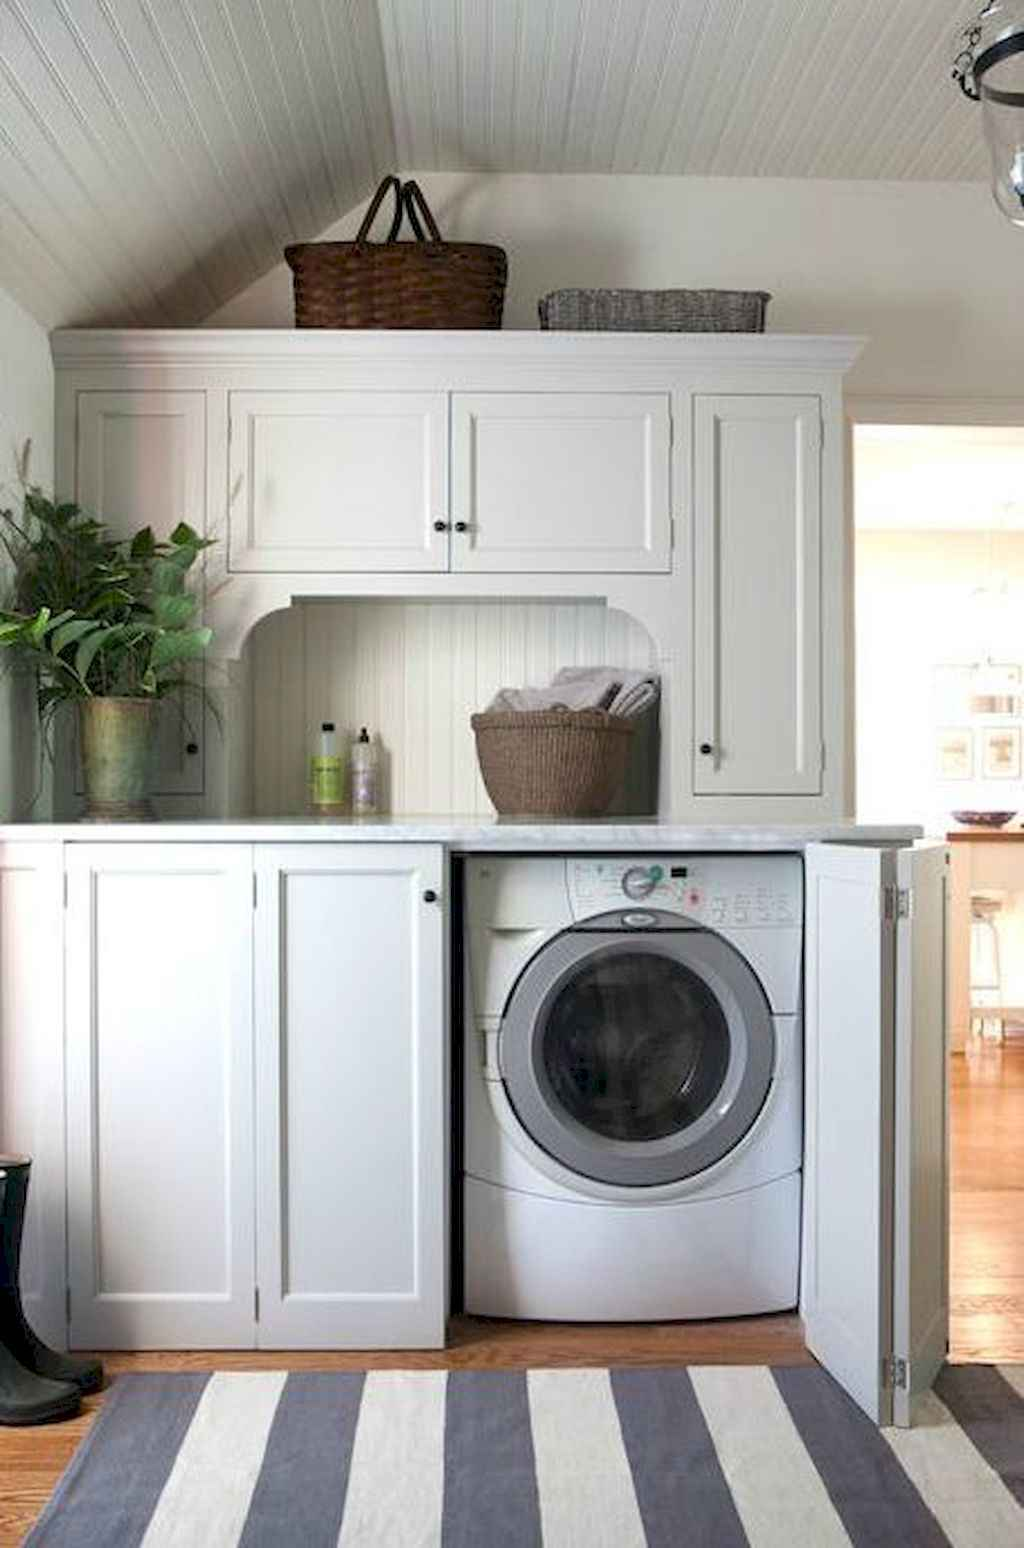 45 Rustic Farmhouse Laundry Room Design Ideas and Makeover (22)